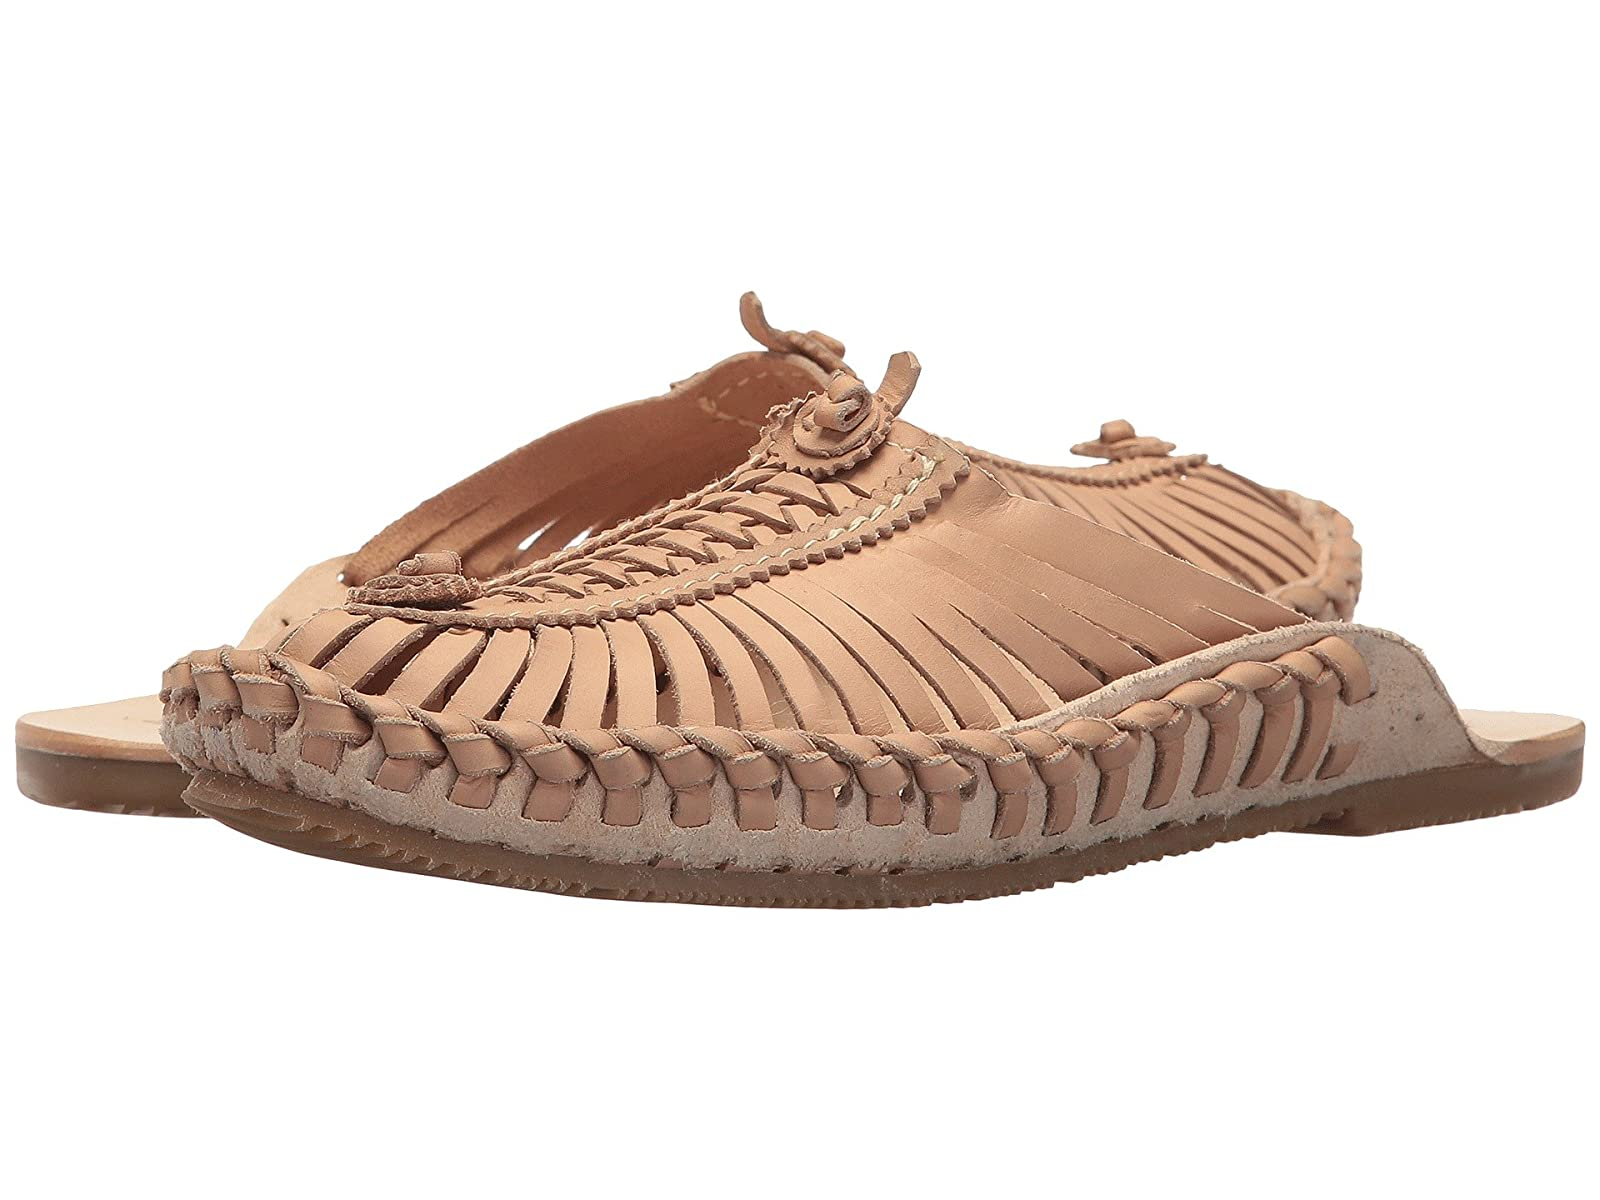 Matisse Matisse x Amuse Society - MoroccoAtmospheric grades have affordable shoes